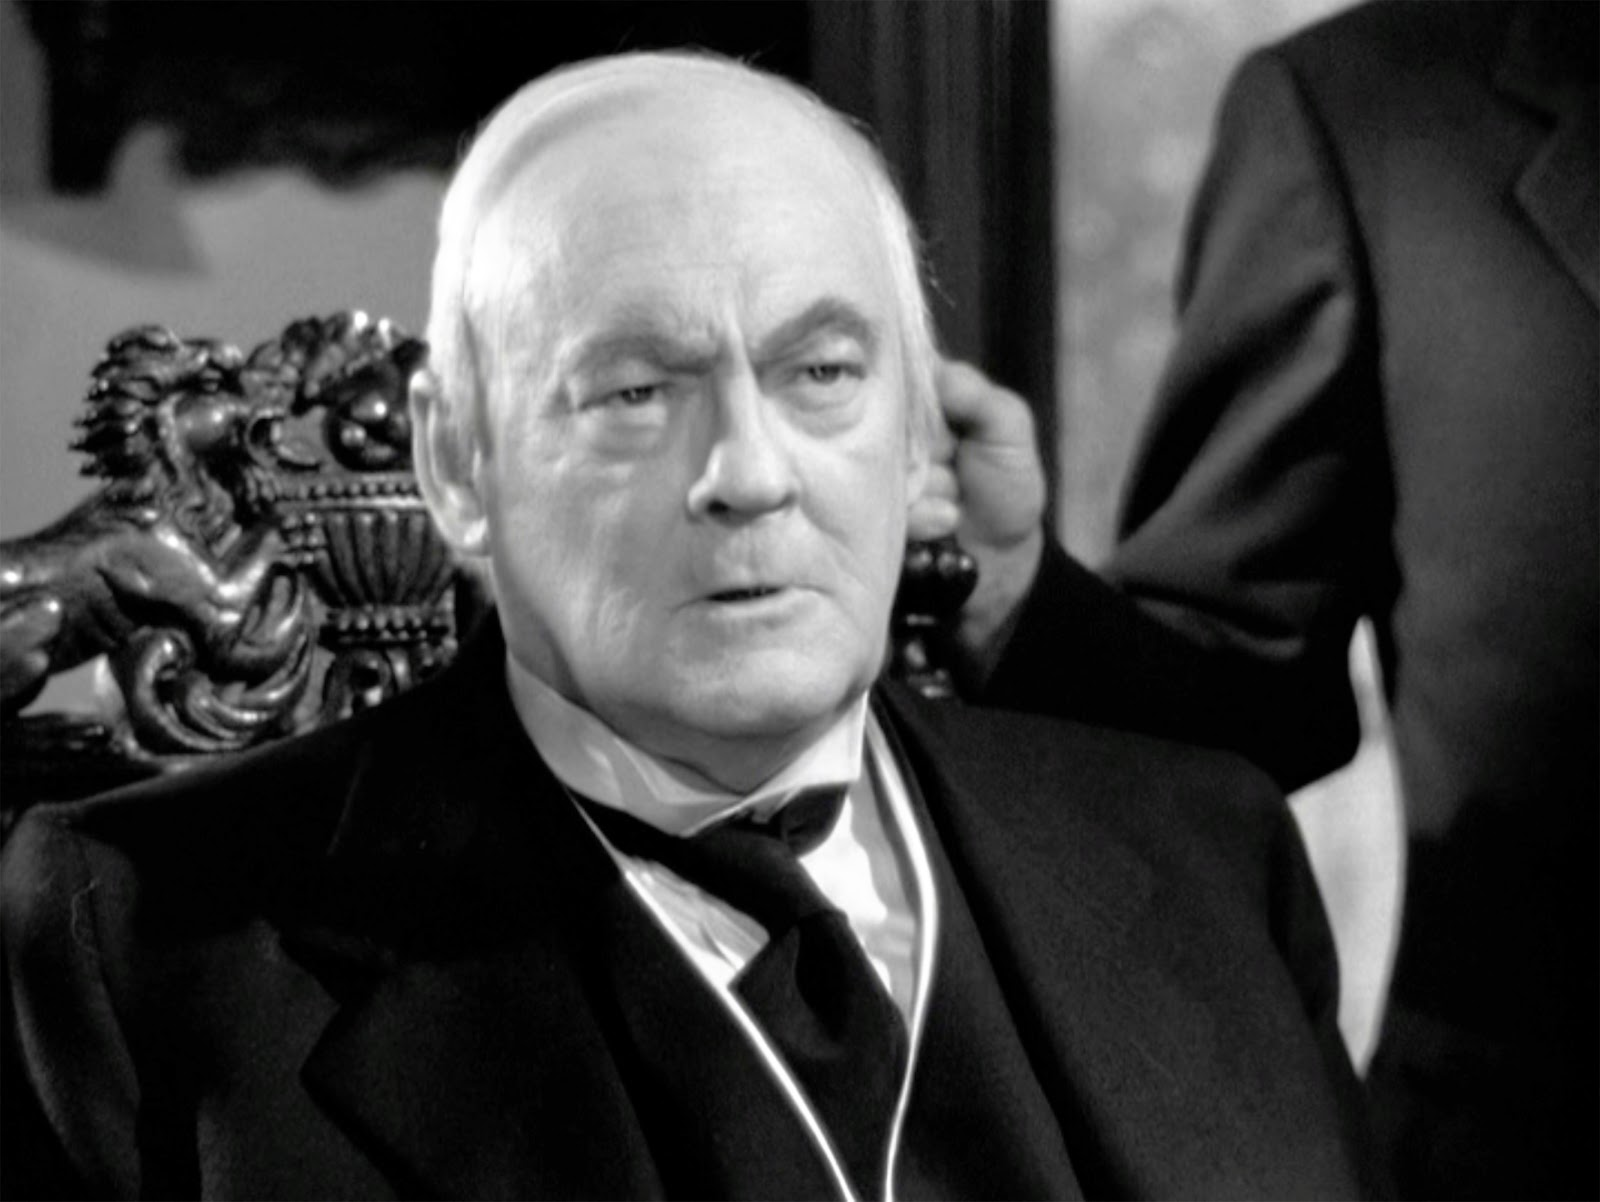 Mr. Potter (Lionel Barrymore) it's a Wonderful Life